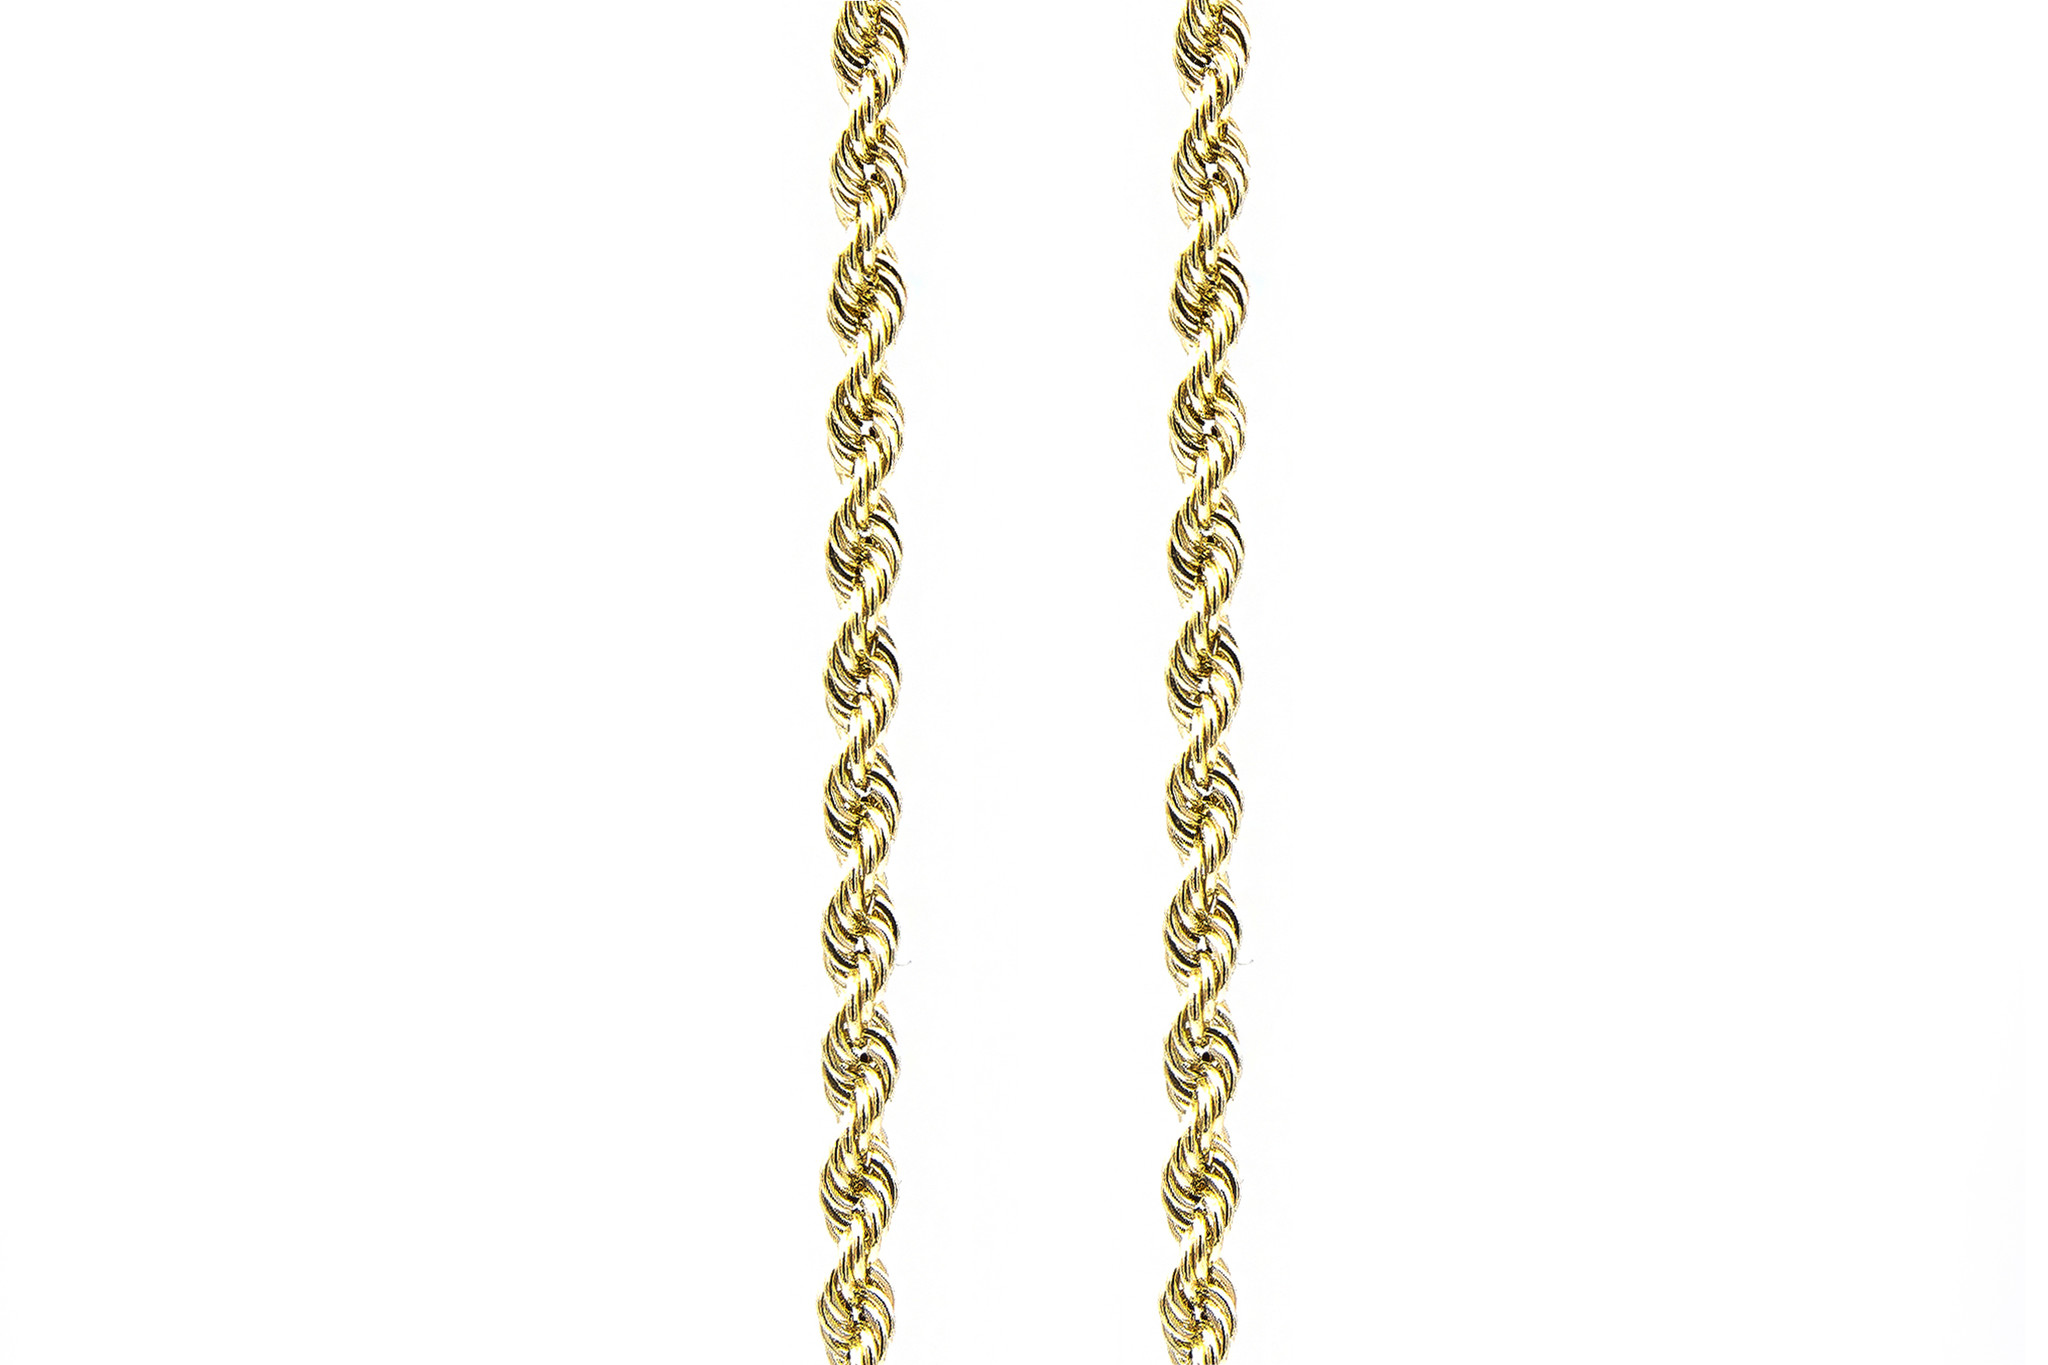 Rope Chain - 14k- 4,5 mm-1